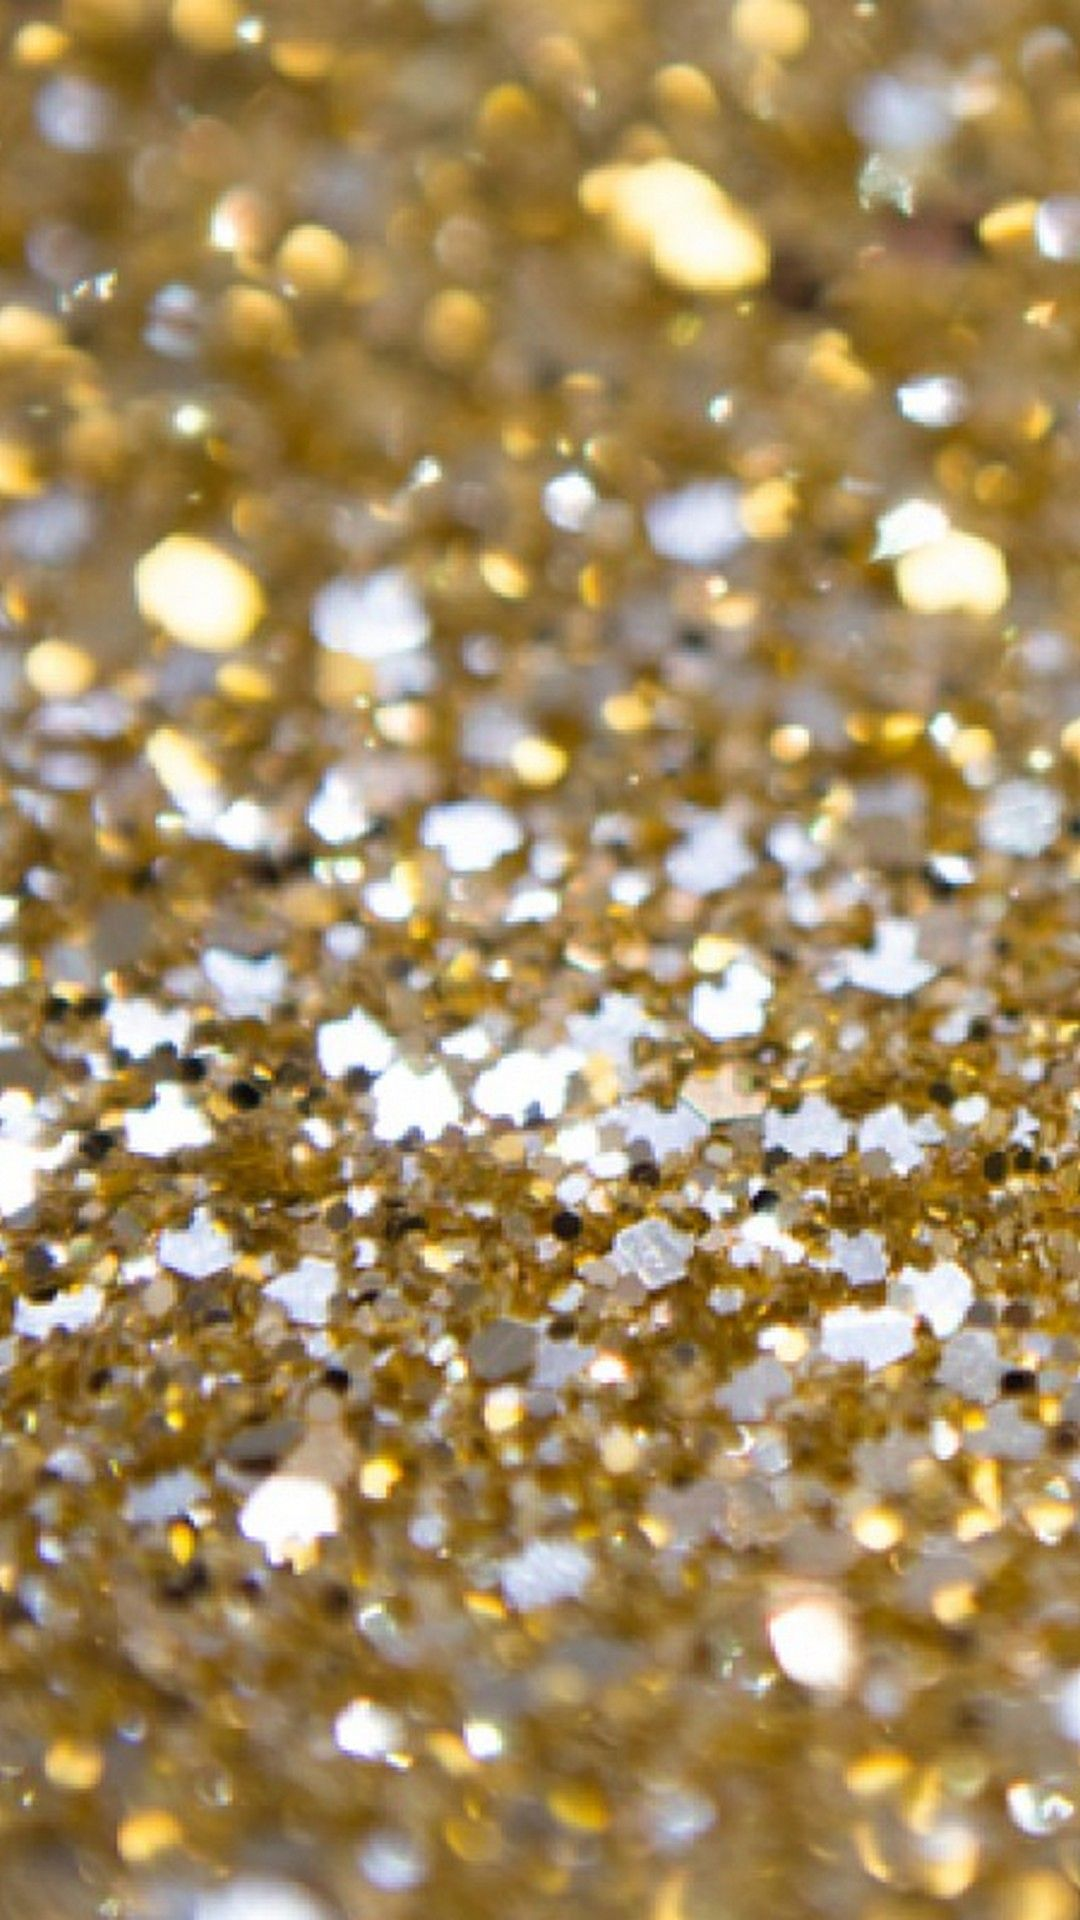 Gold Glitter Hd Wallpapers For Android 2018 Android Wallpapers